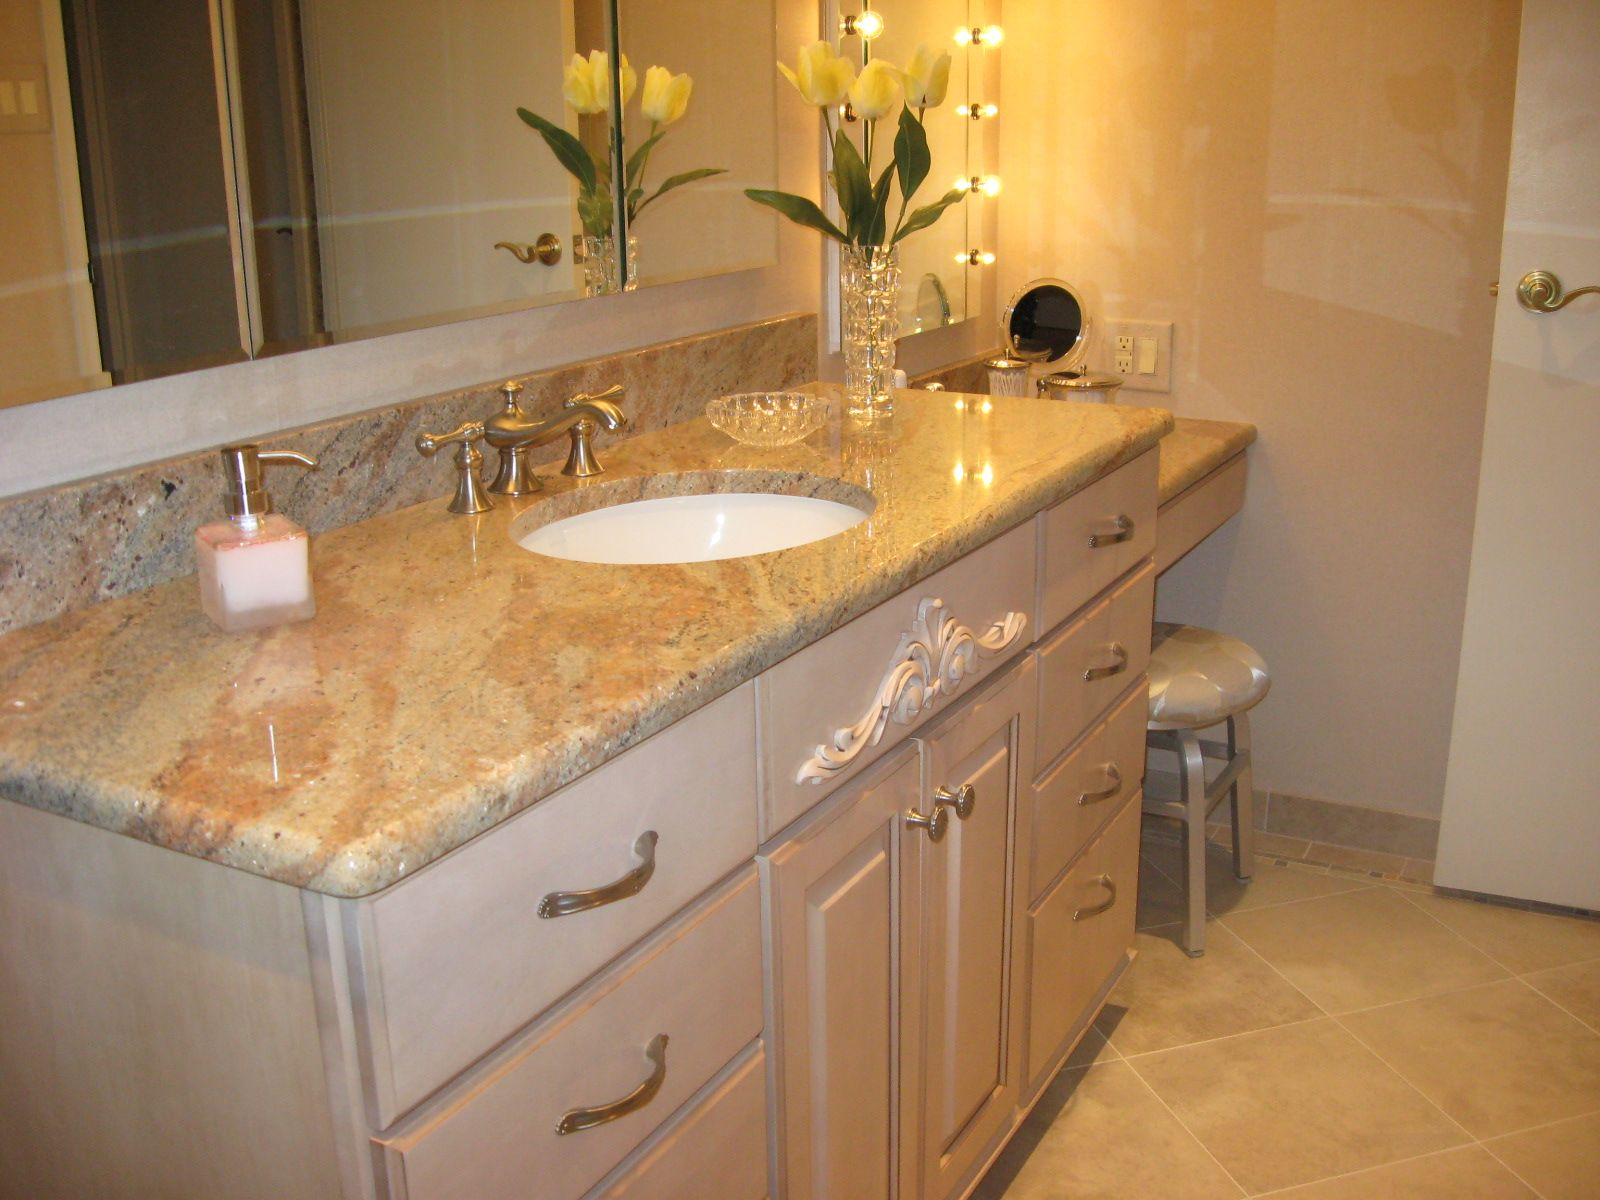 Granite Countertops For Bathrooms Granite Counters Pinterest Countertops Granite And